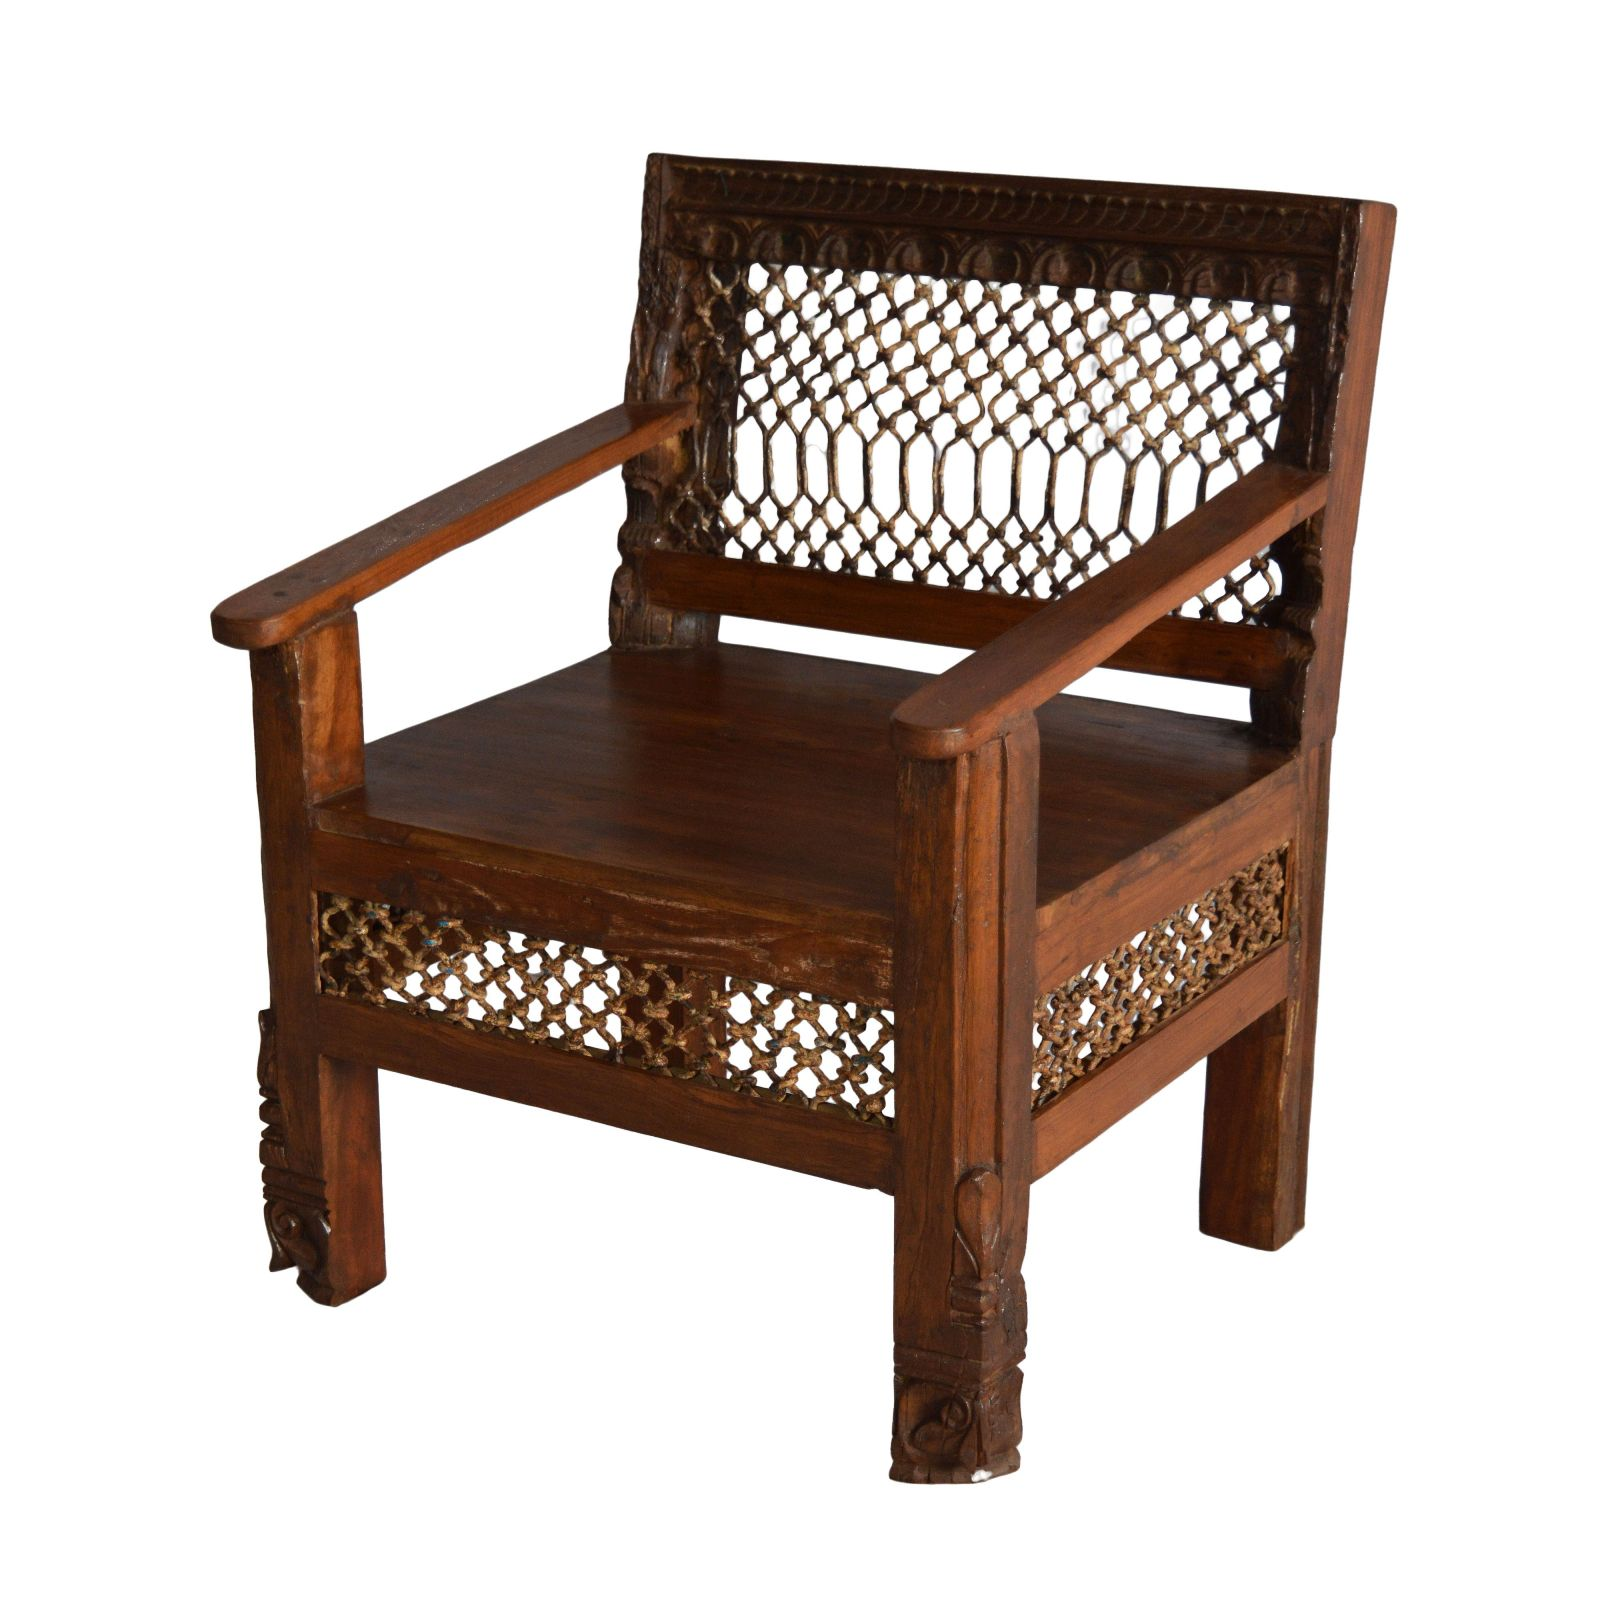 colonial sofa sets india bed corner chaise old teak wood with iron grill set  indian furniture